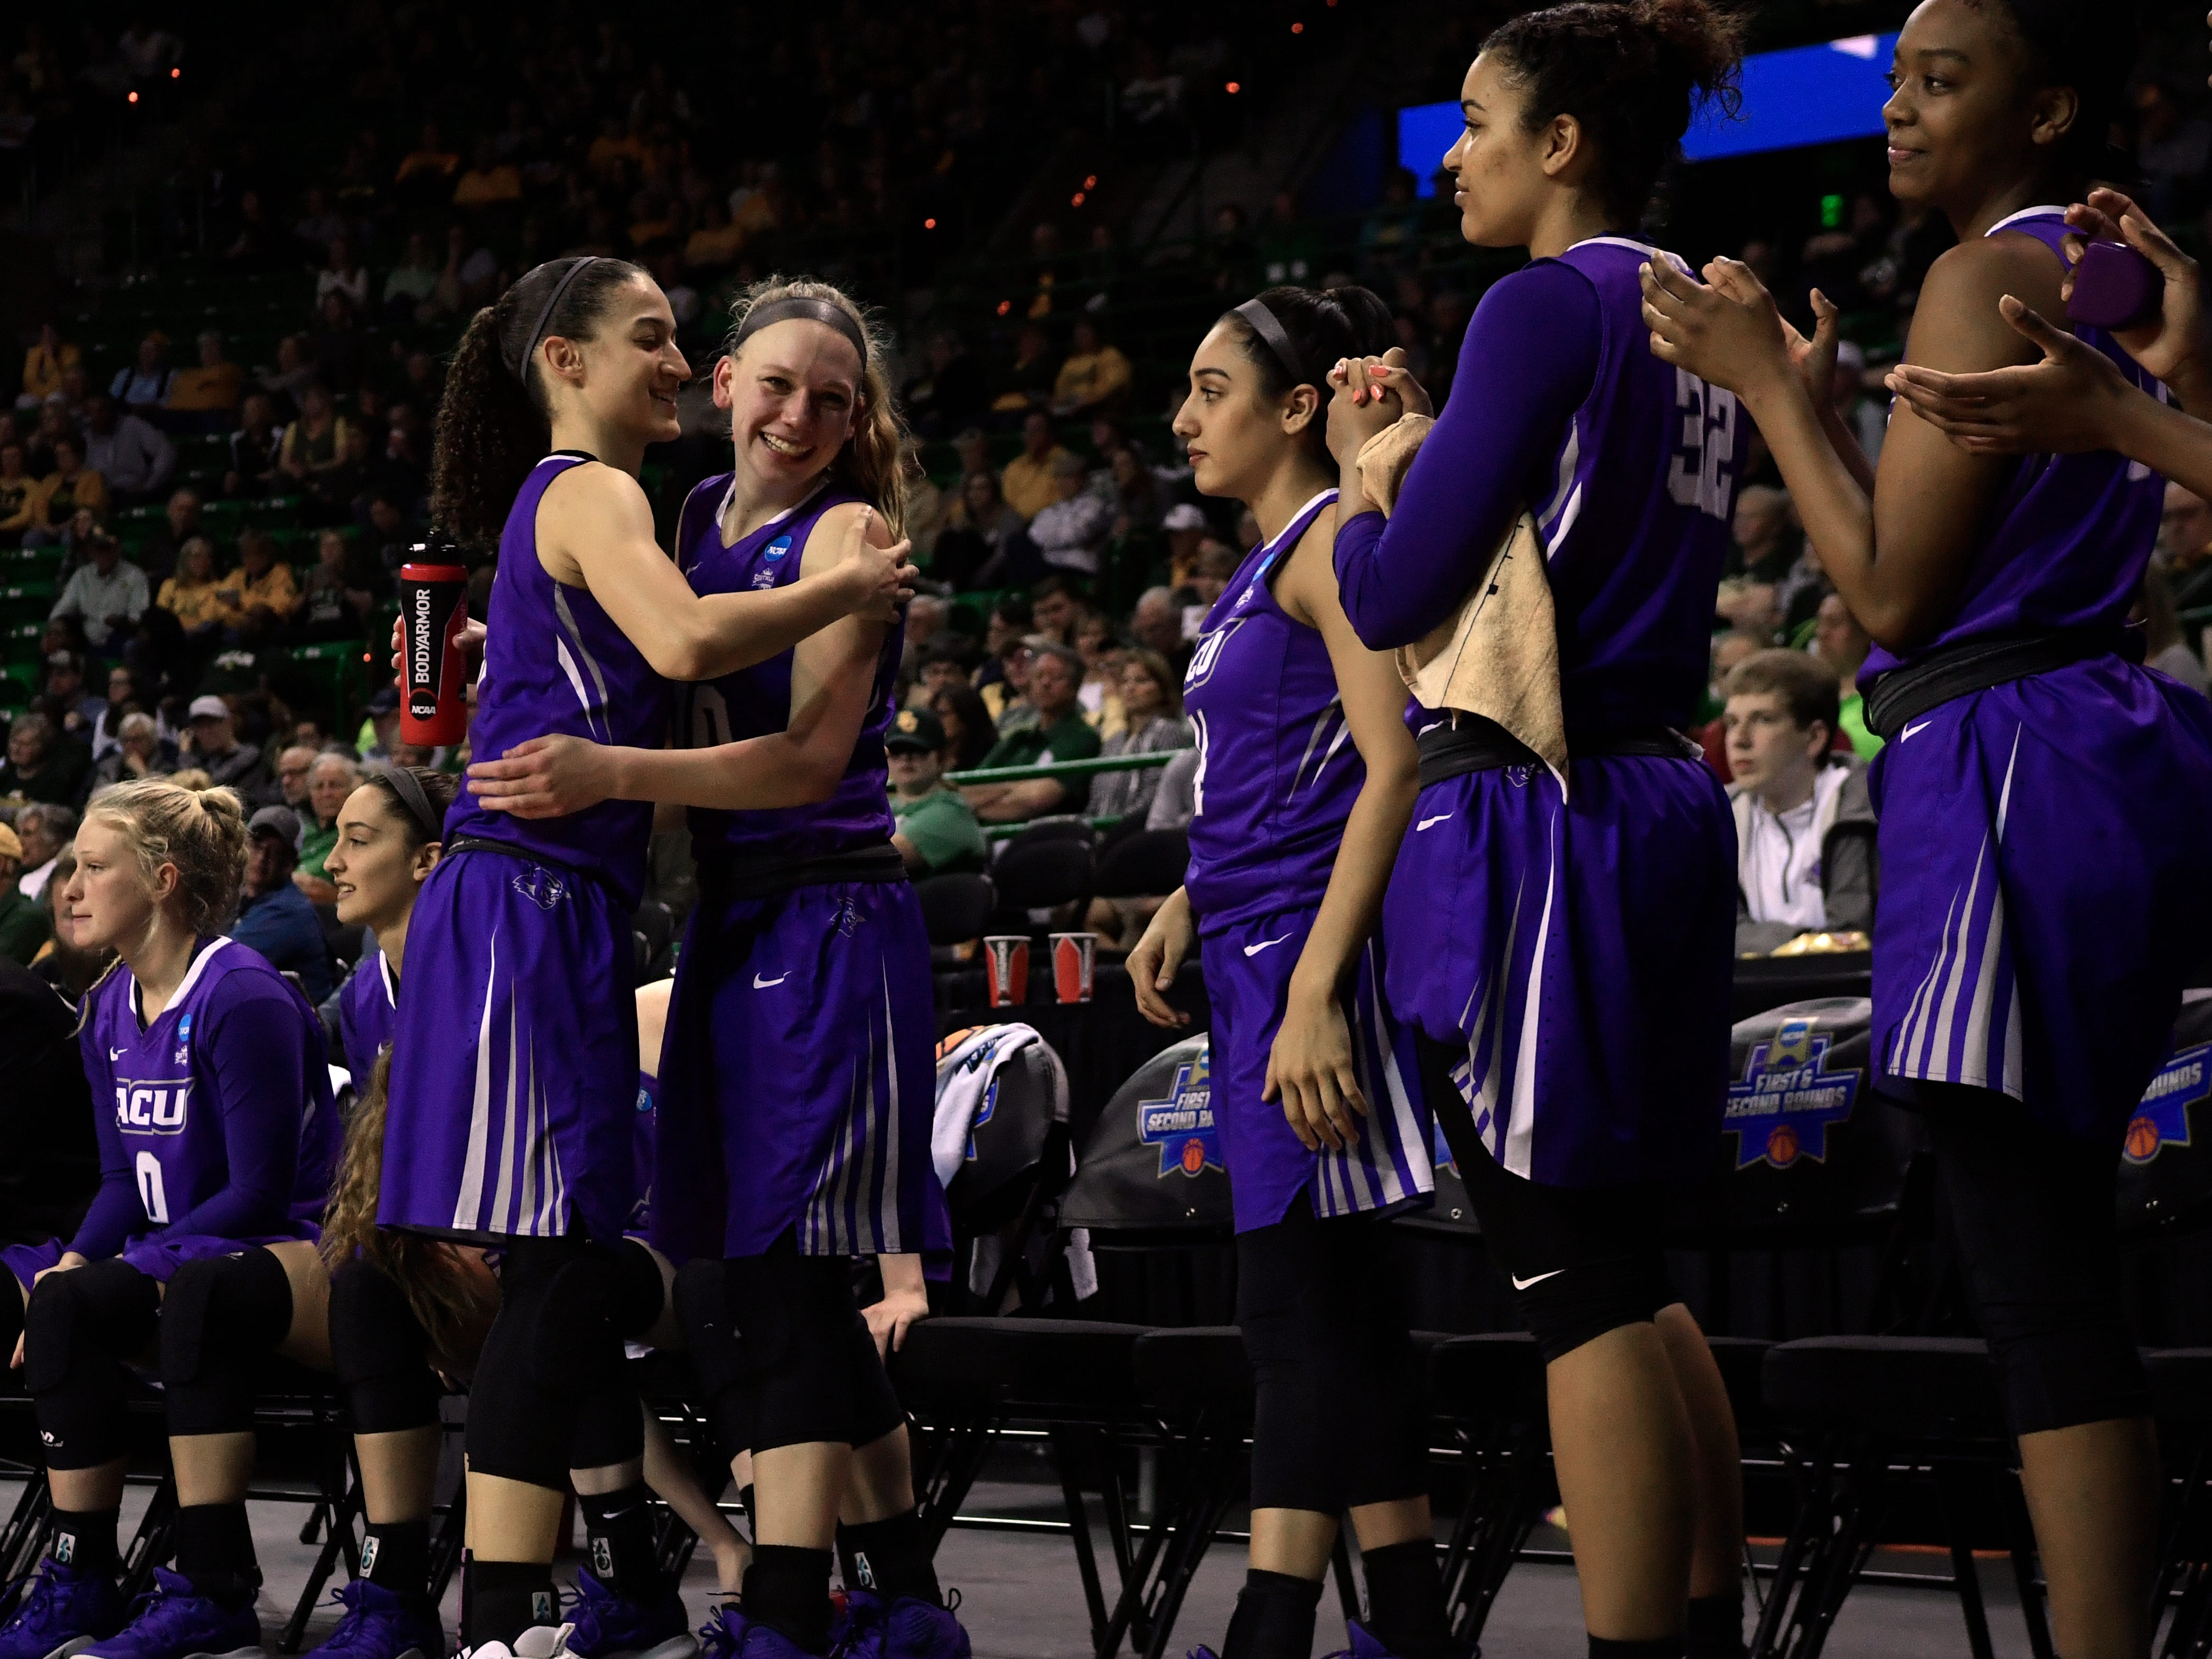 Sara Williamson embraces Breanna Wright, as she goes down the line, expressing her appreciation for her teammates on the ACU bench before the end of Saturday's NCAA Tournament women's round 1 basketball game March 23, 2019. Baylor defeated Abilene Christian University, 95-38.